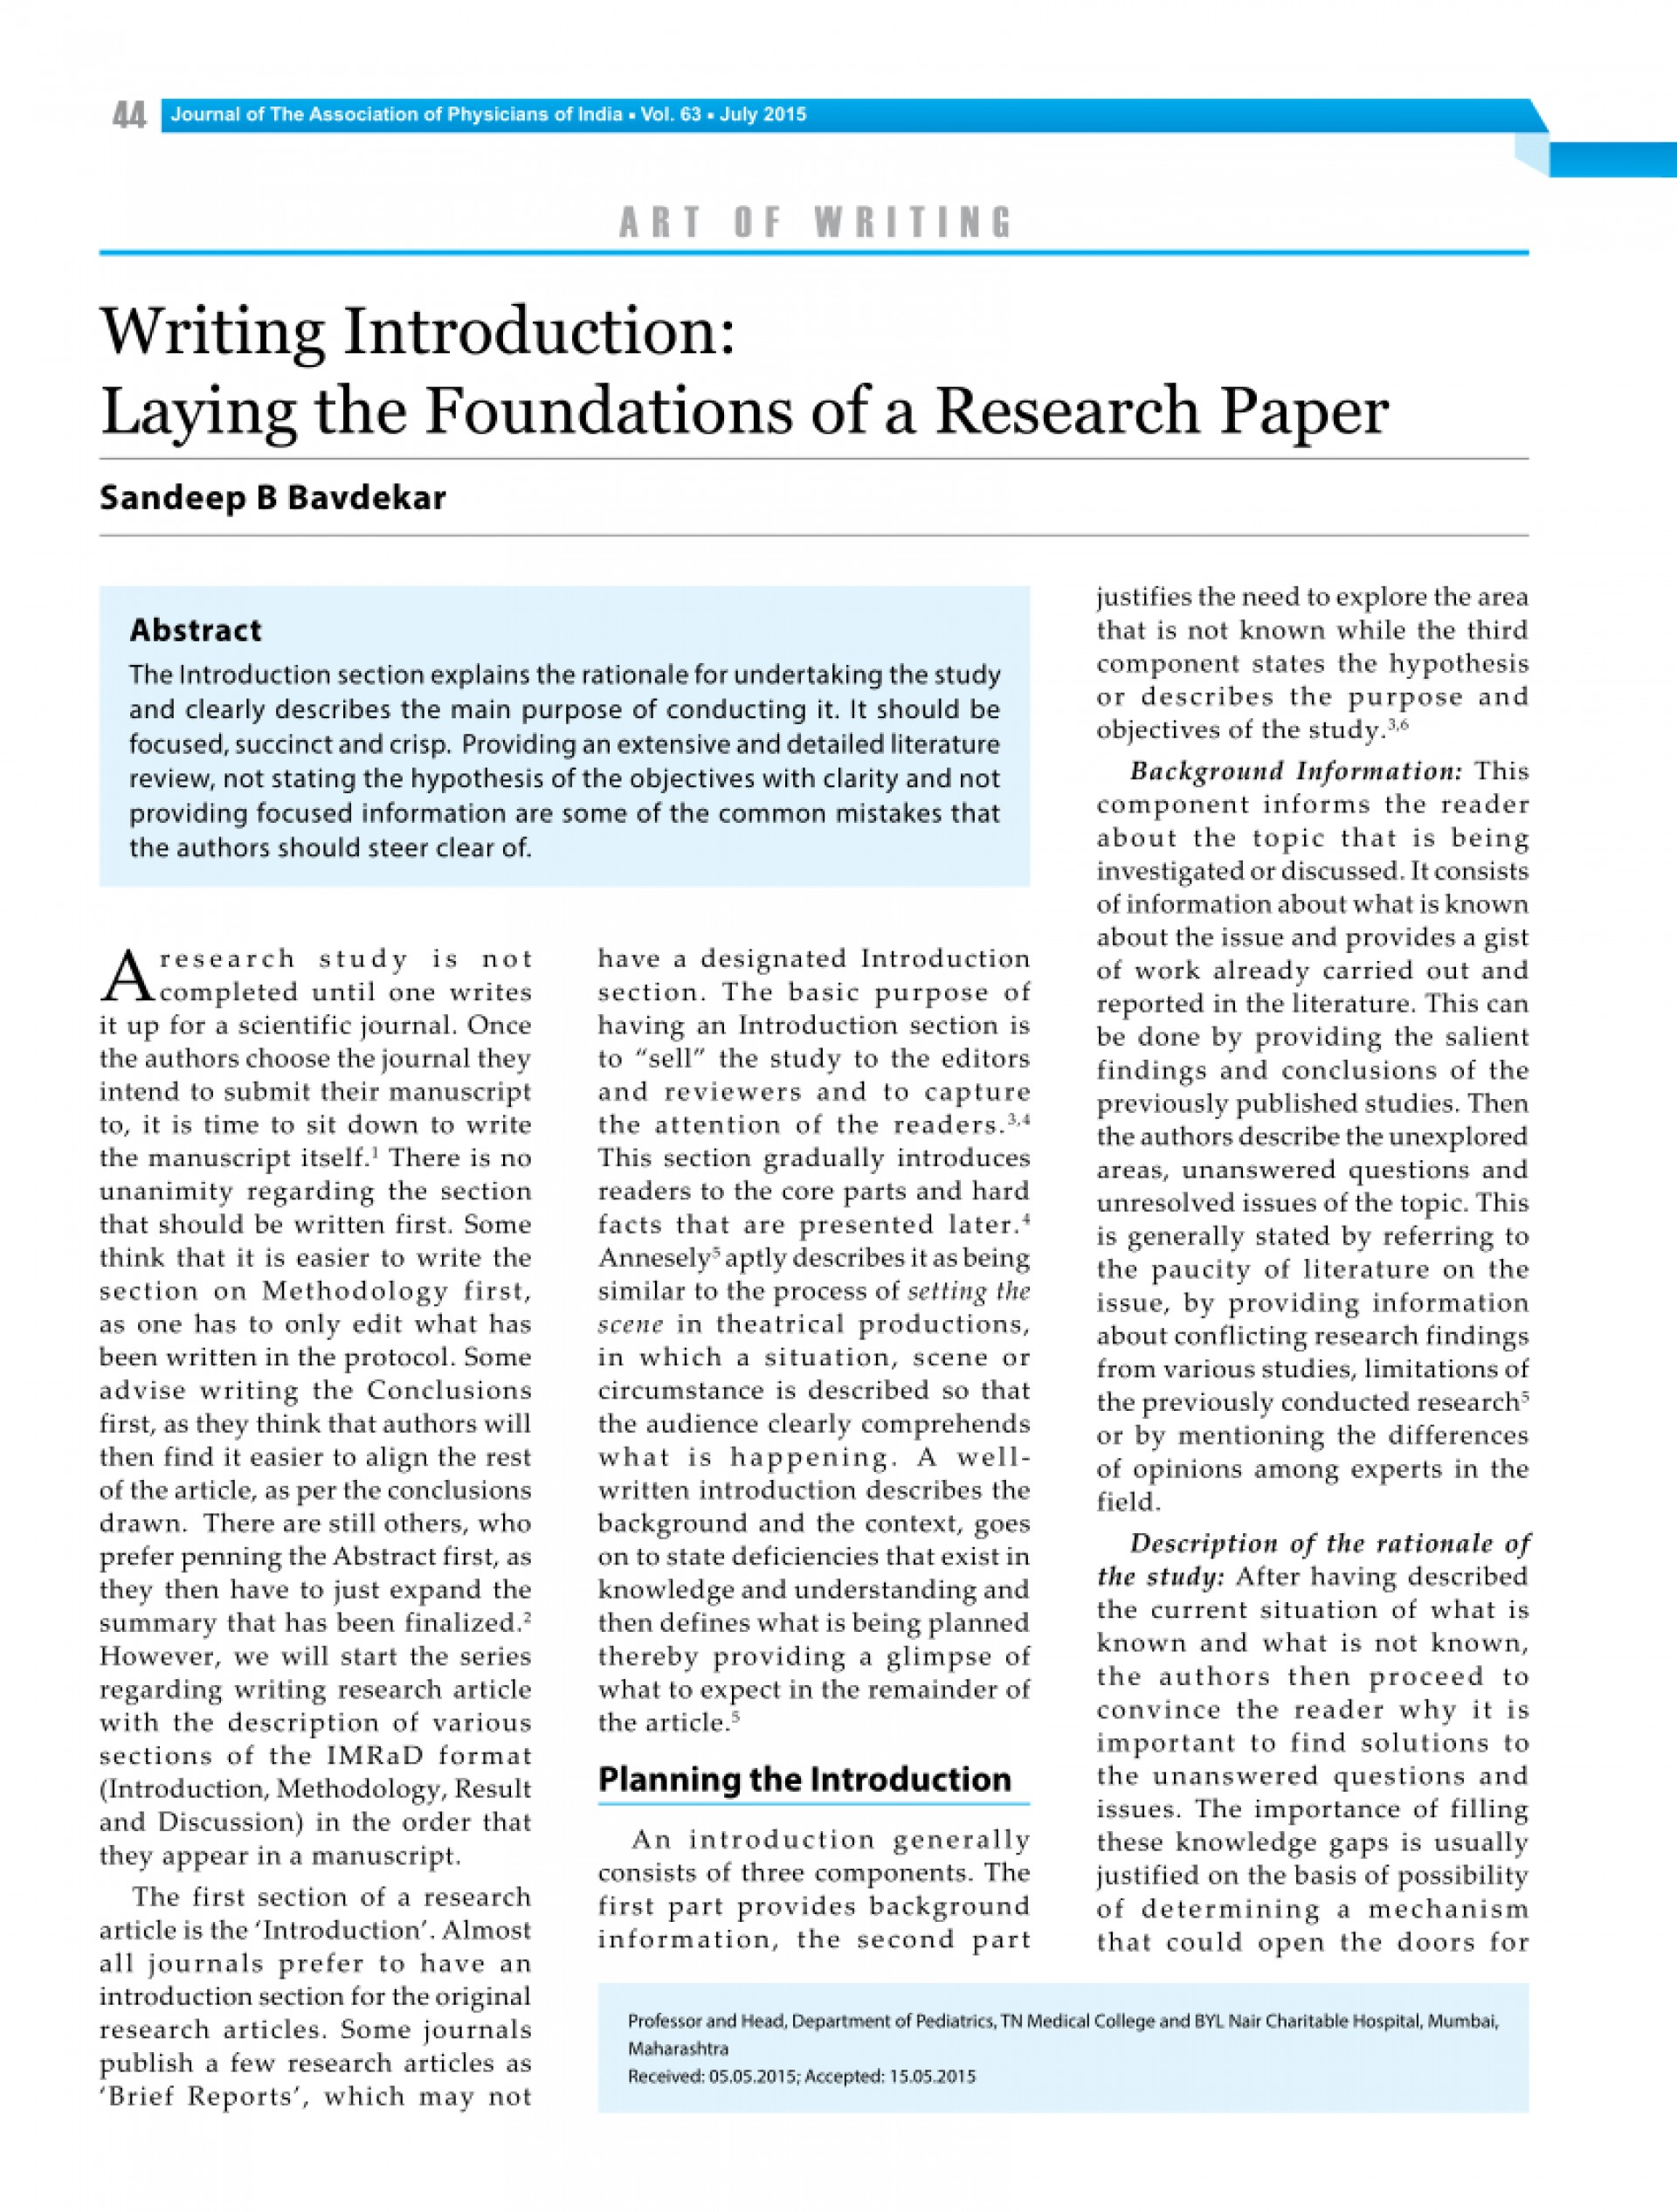 004 Largepreview Research Paper Writingn Introduction To Top Writing An A Intro Steps In 1920